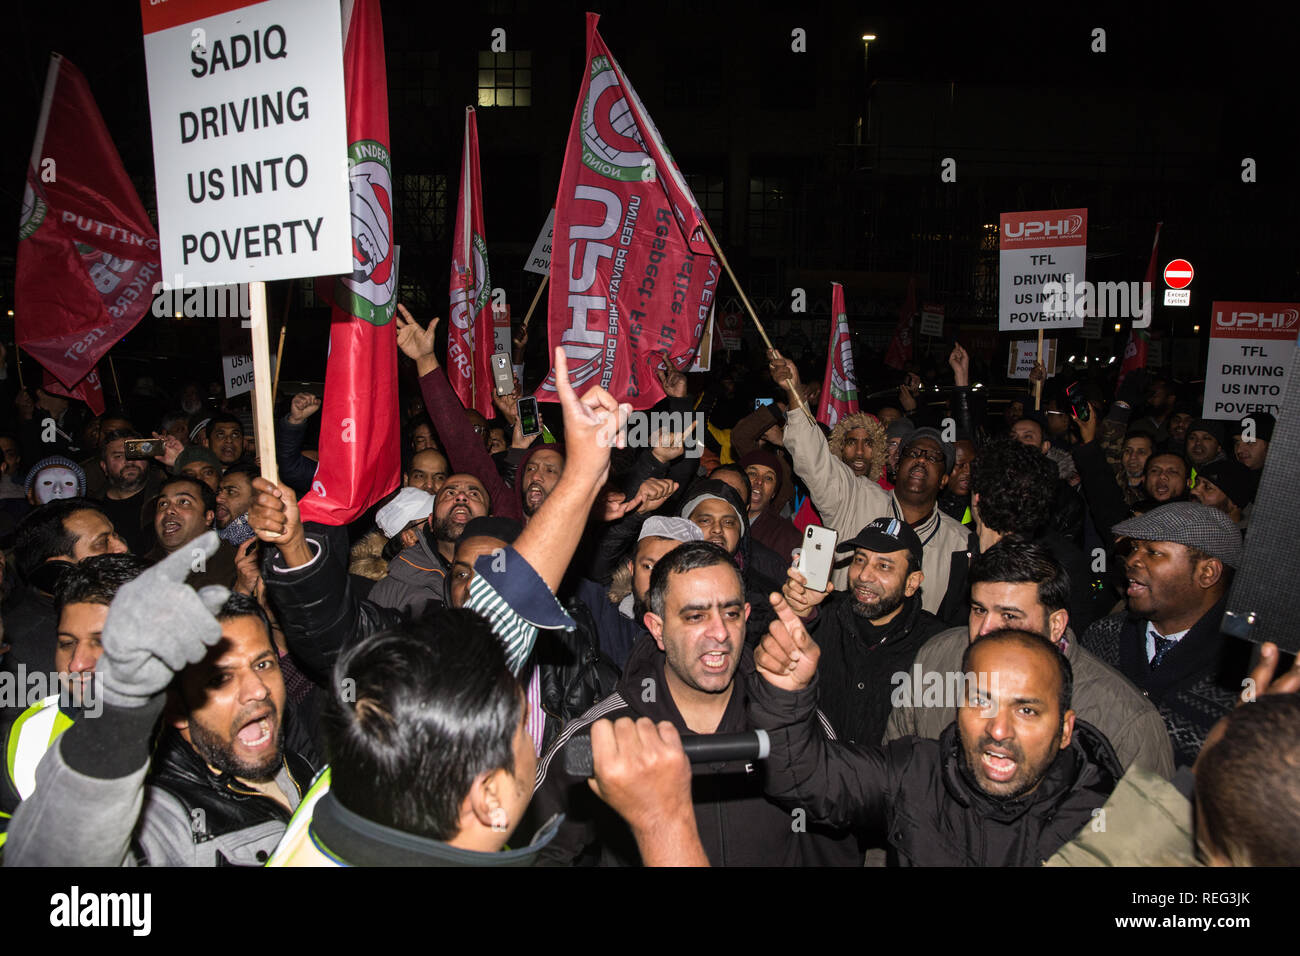 London, UK. 21st January, 2019. Hundreds of minicab drivers take part in a protest outside the offices of Transport for London organised by the Independent Workers Union of Great Britain's (IWGB) United Private Hire Drivers branch following the introduction last month of congestion charges for minicabs. Credit: Mark Kerrison/Alamy Live News - Stock Image